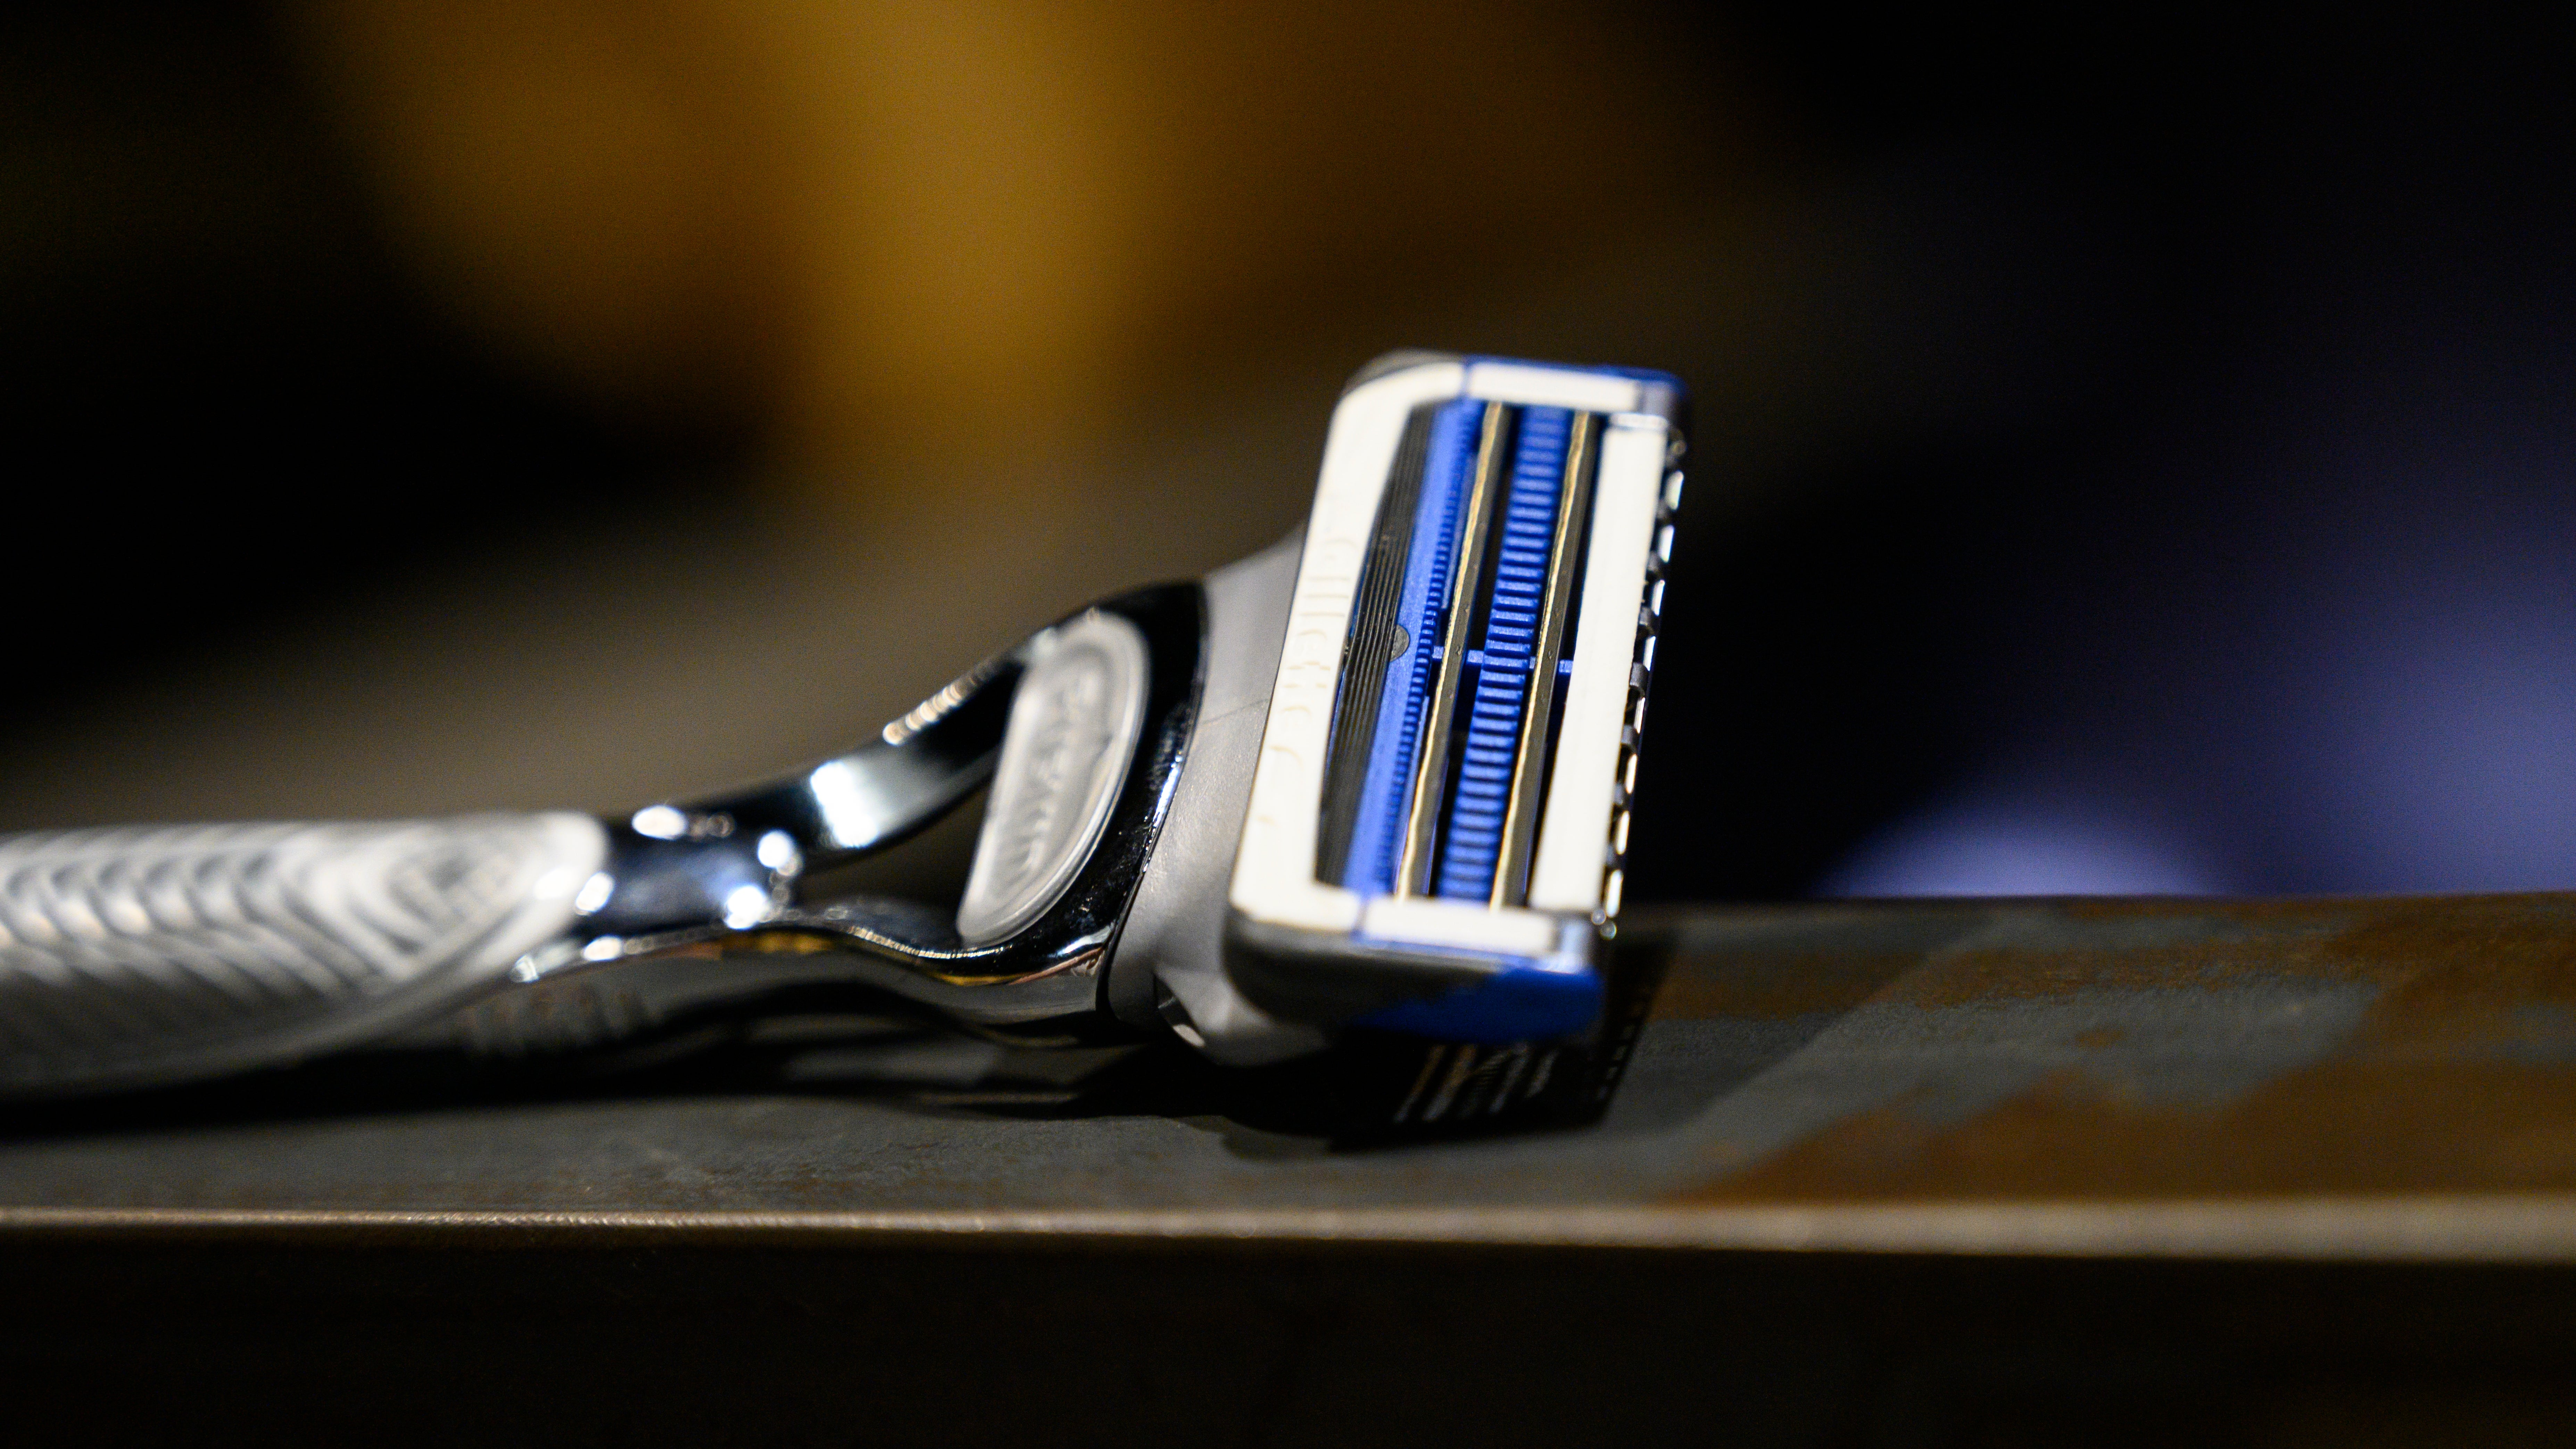 Gillette's Latest Innovation Is Removing Blades From Razors